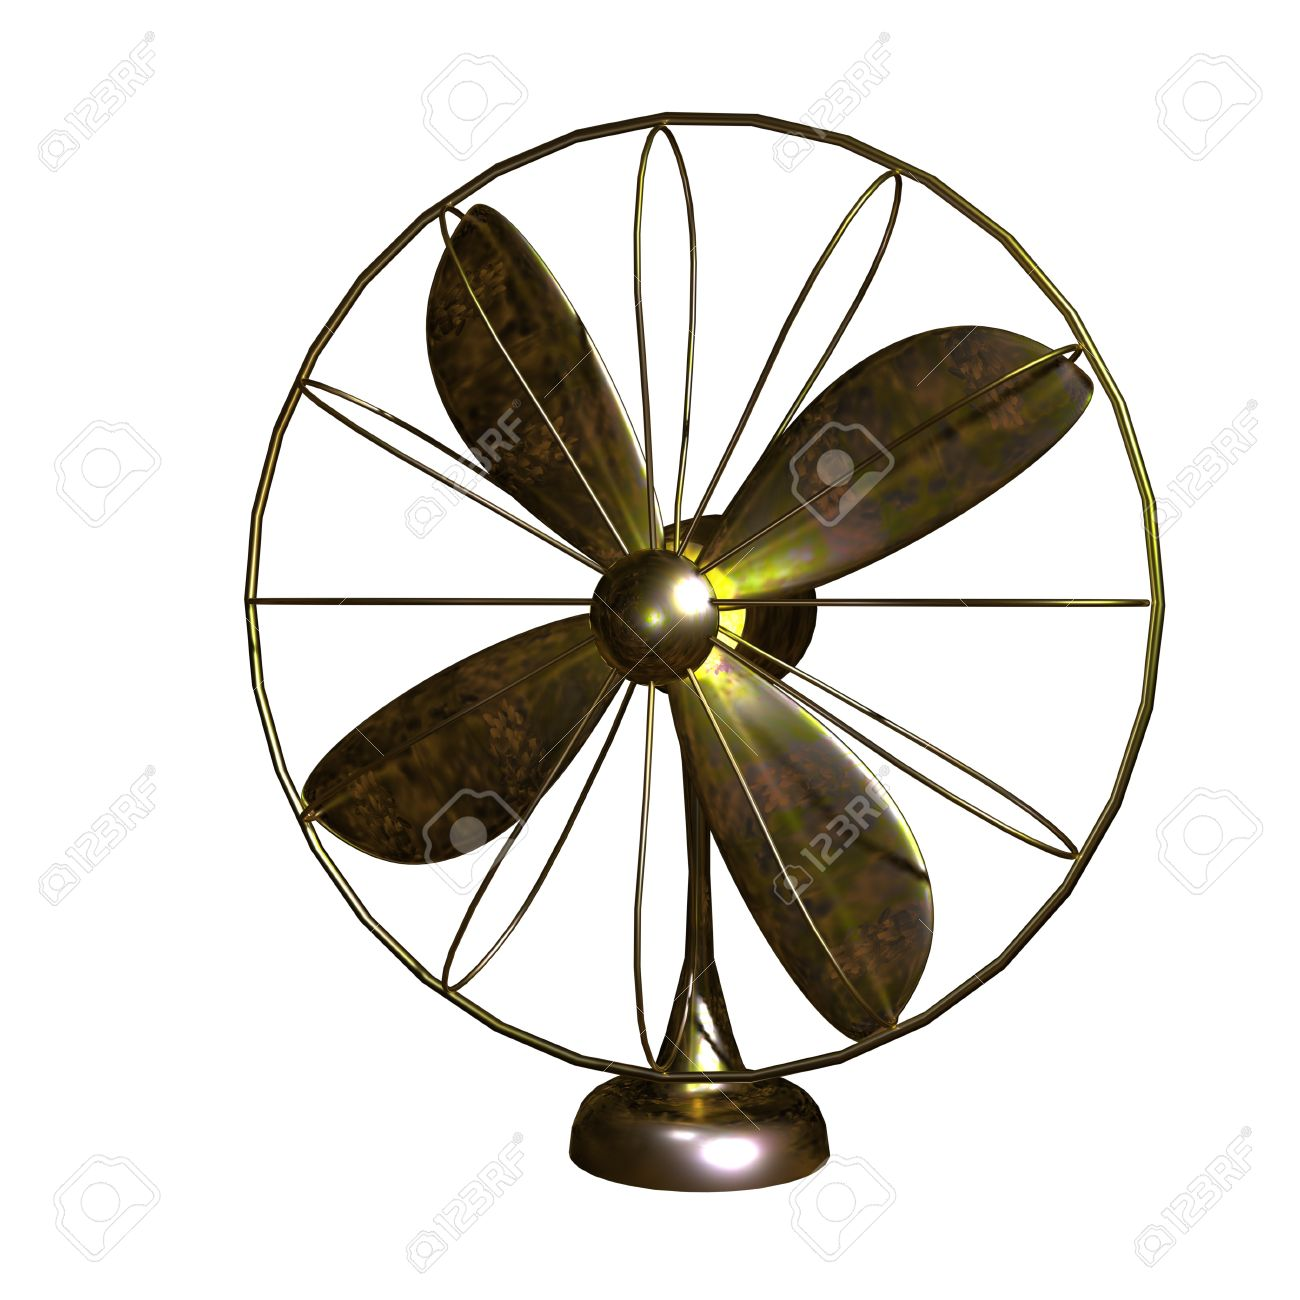 Old Fan Made By Copper For Adv Or Others Purpose Use Stock Photo.